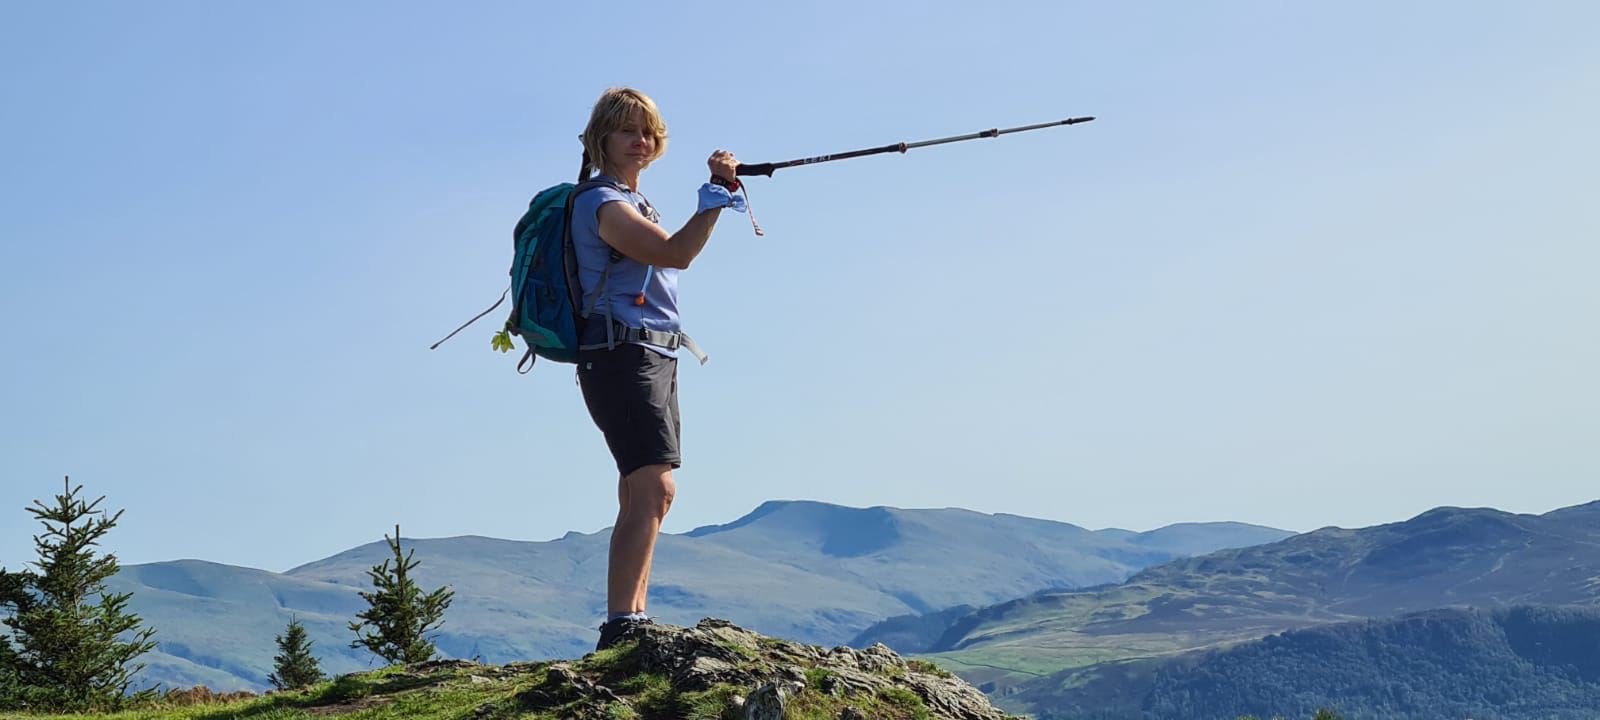 Doing my Edna Everage impression with a pointy stick. Is This Mutton on holiday in the Lake District